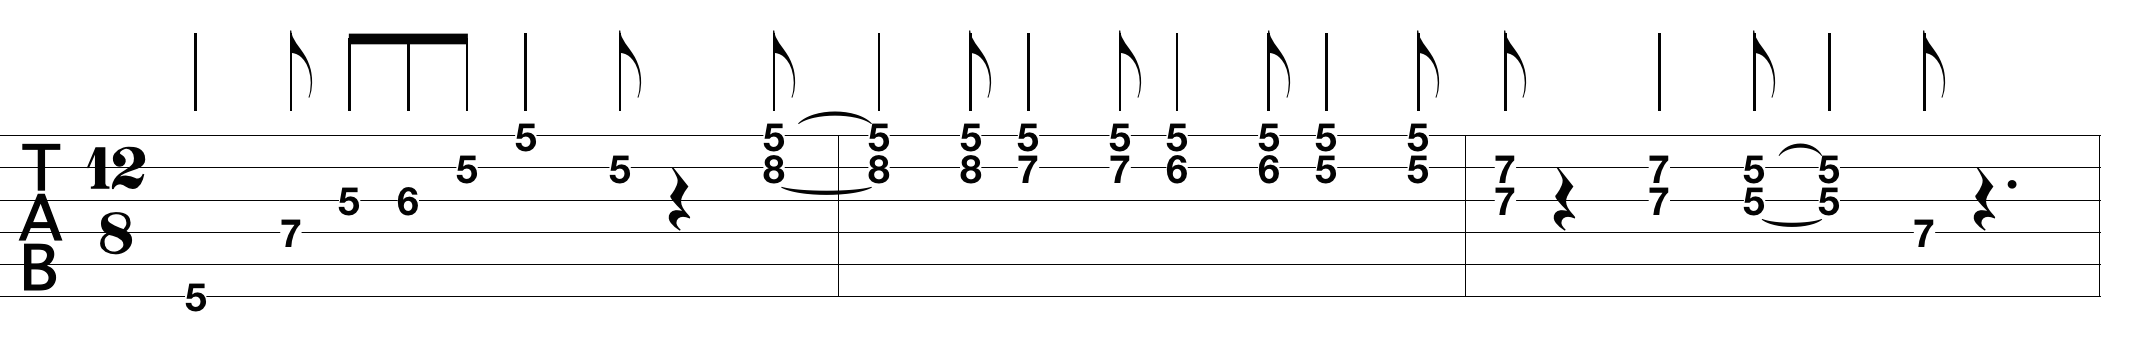 online-blues-guitar-lessons_1.png